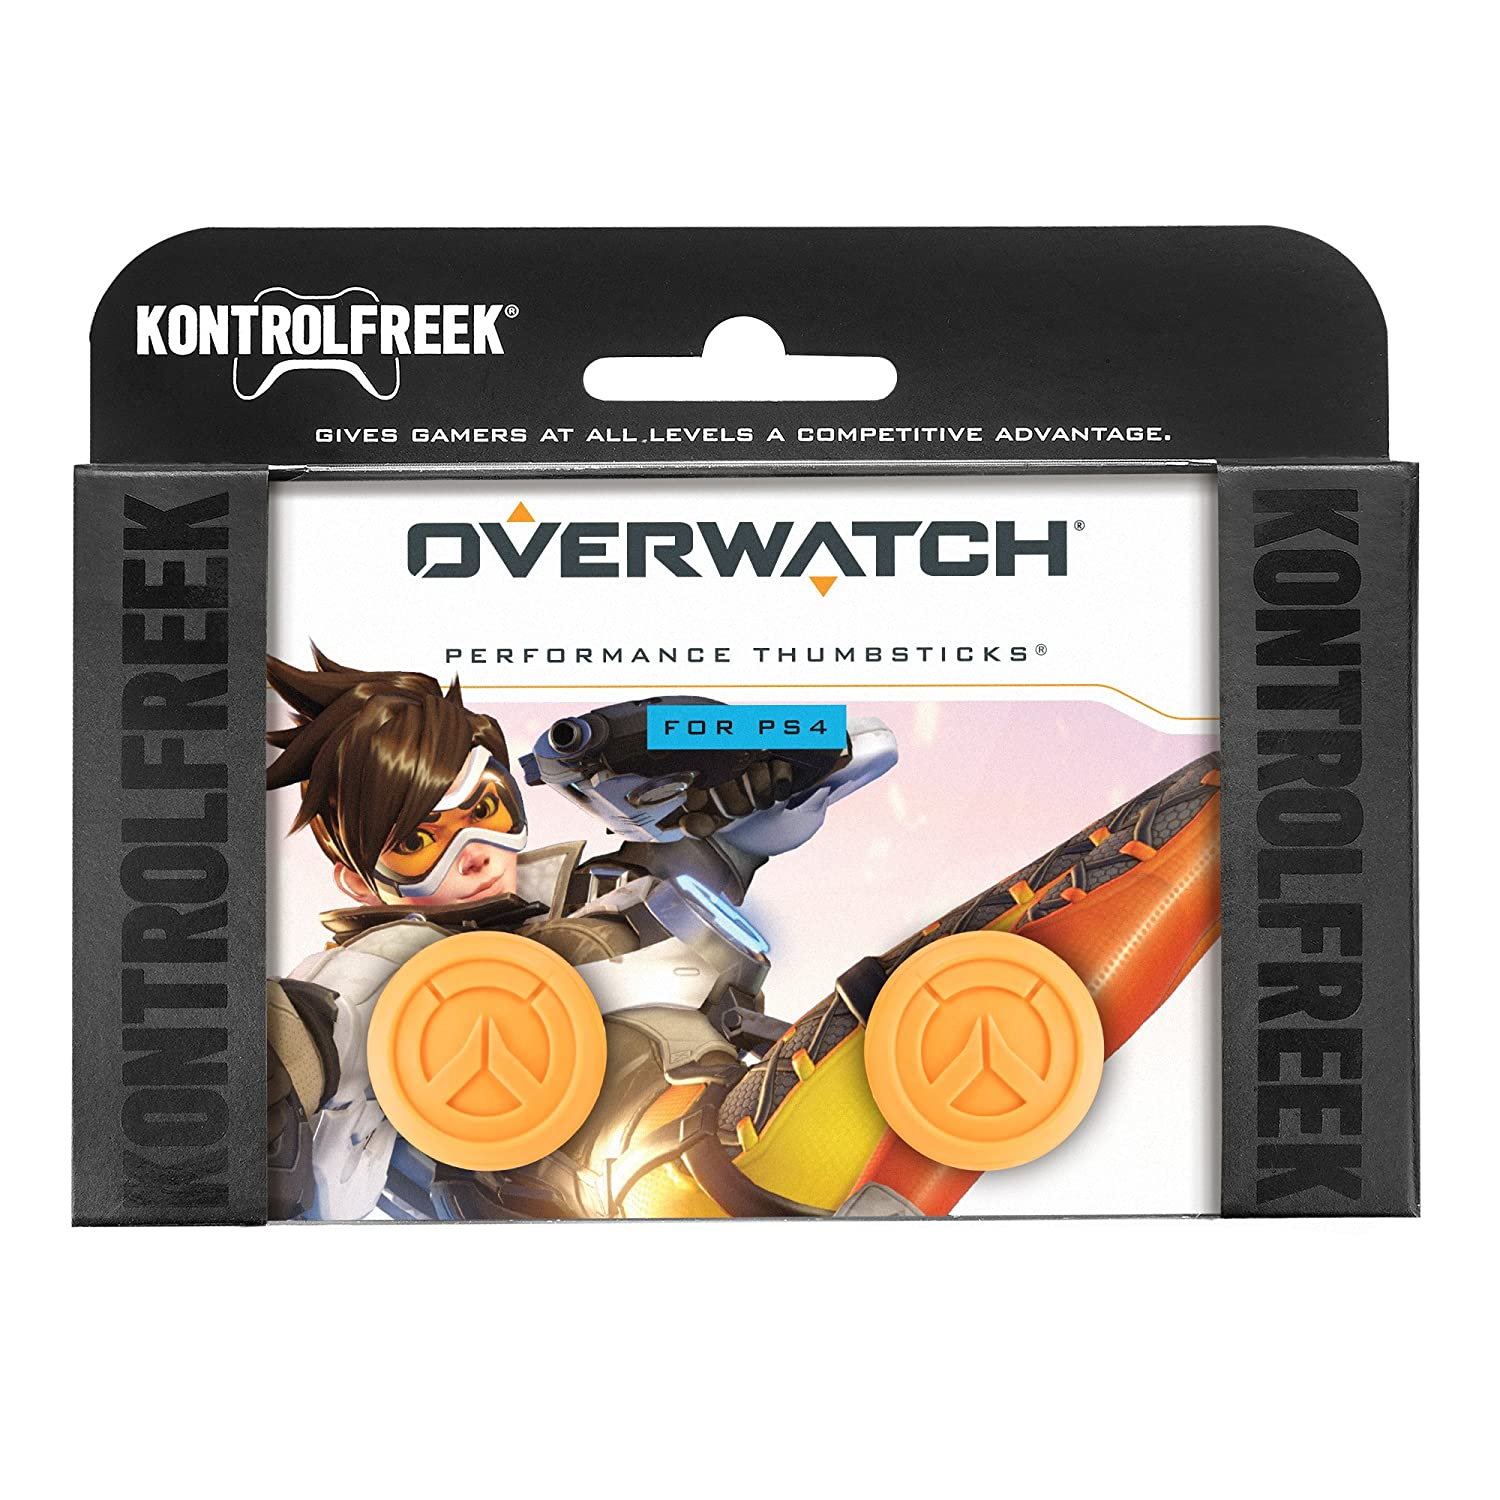 Kontrolfreek Overwatch Performance Thumbsticks For Ps4overwatch Reg 2 Playstation 4 Controller Ps4 Video Games